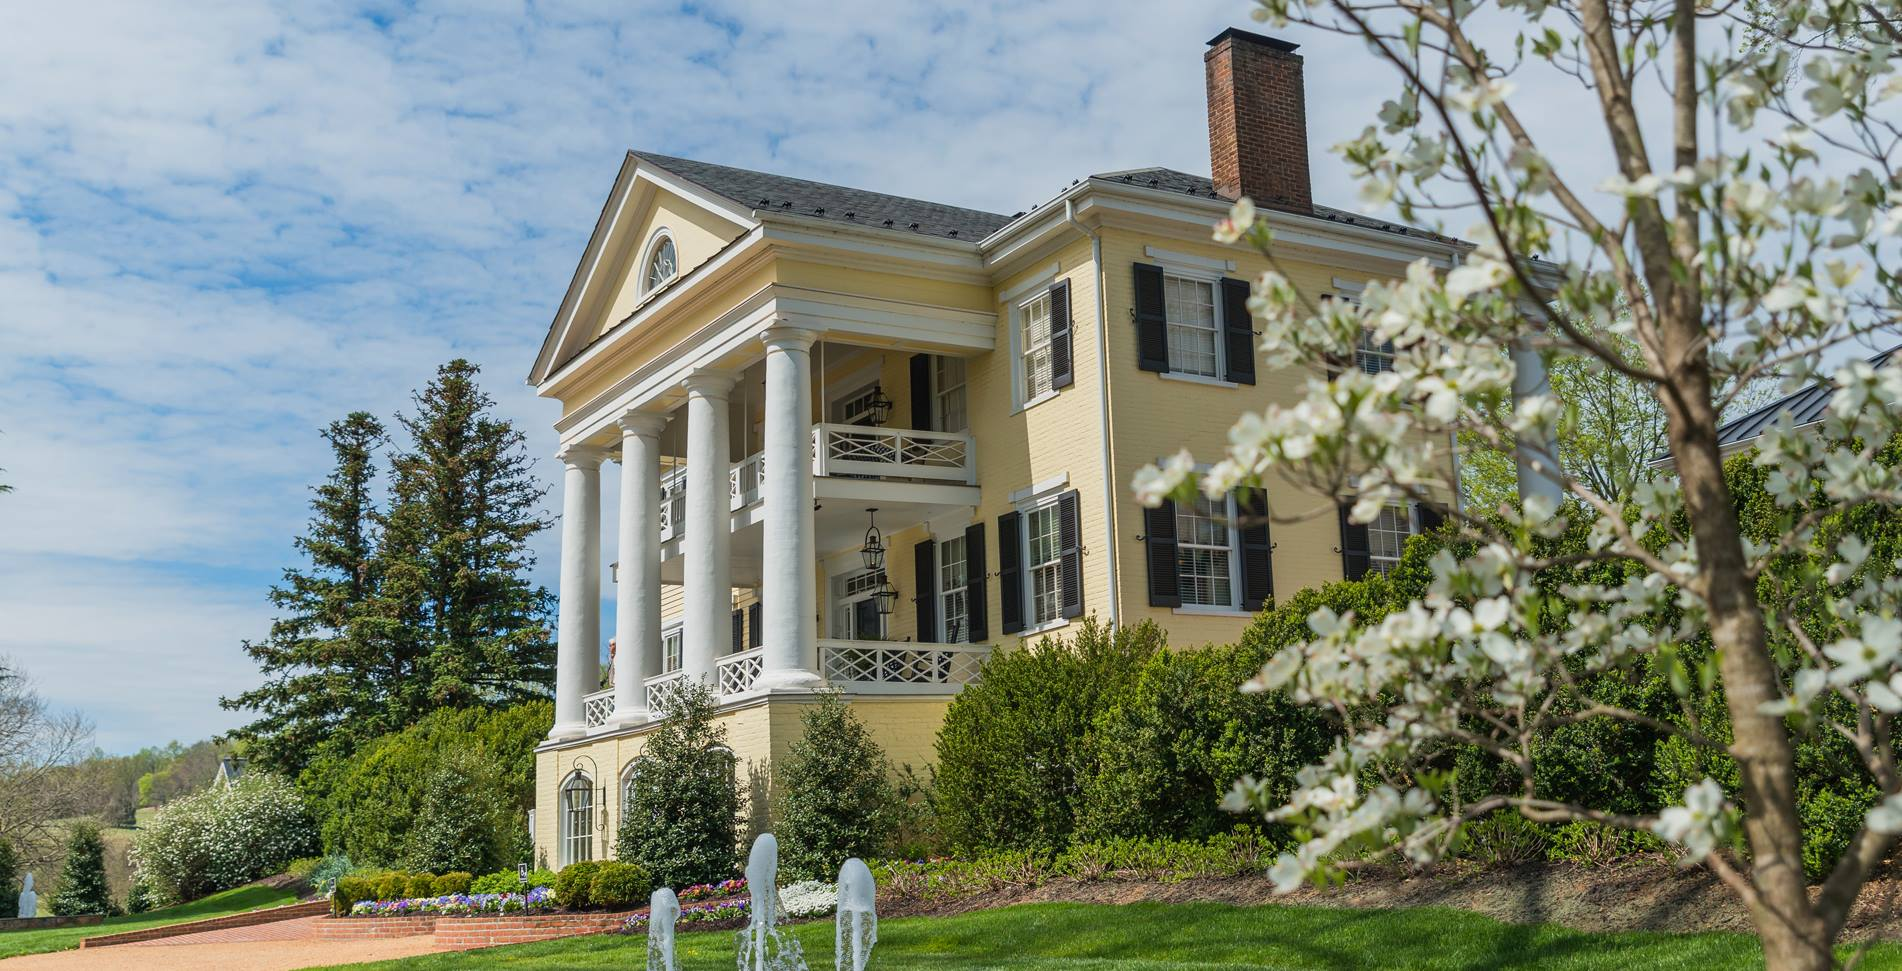 Three Of The Best Hotels In The U.S. Are Right Here In Virginia And They're Extraordinary